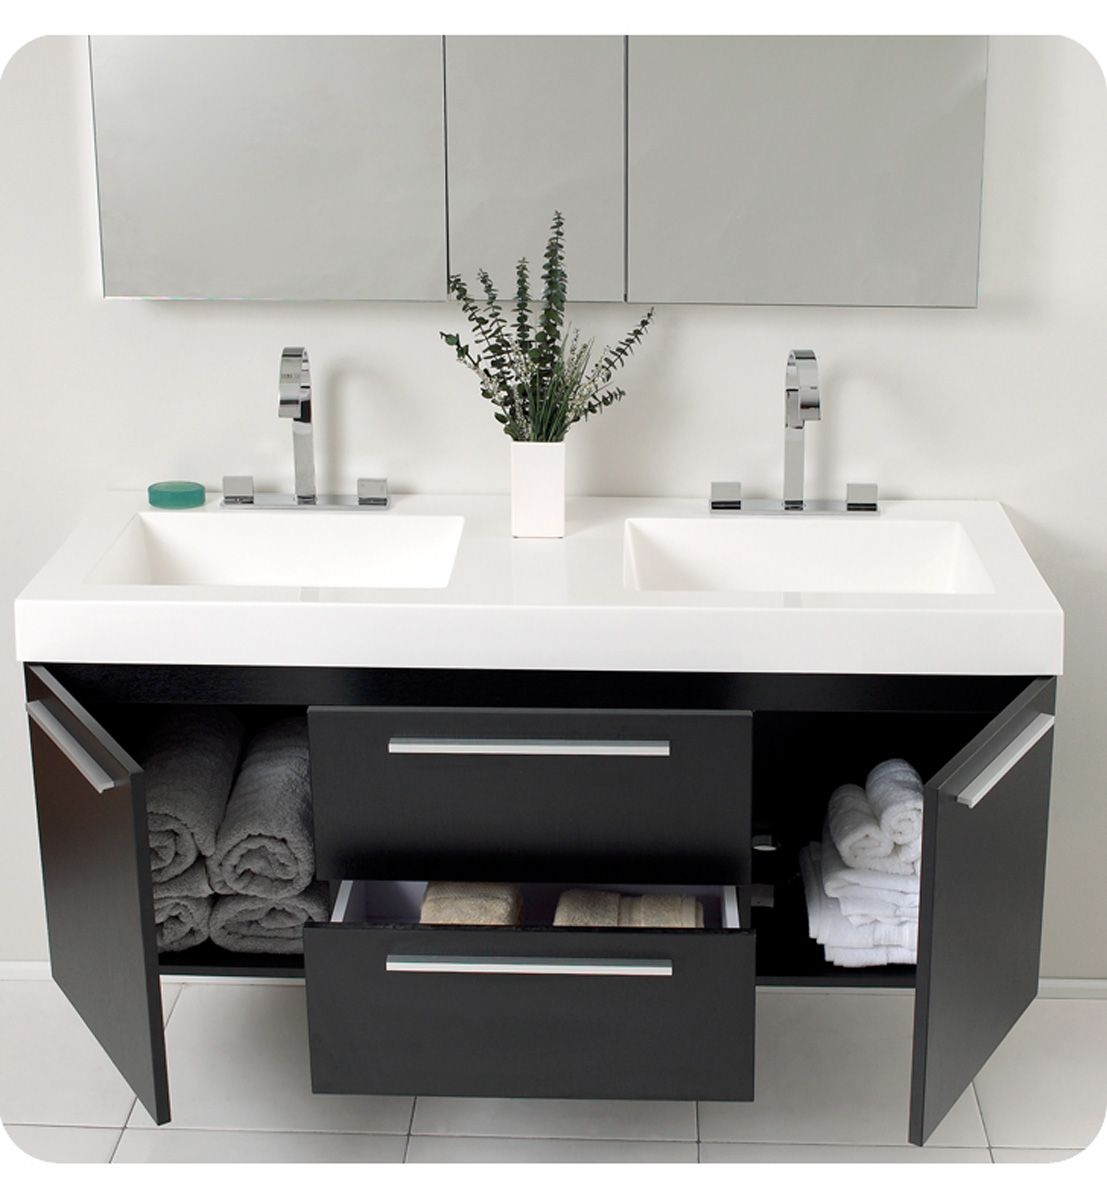 Awesome Modern Floating Vanity With Black Wooden Drawers And Doors Mixed White Fibergl Trough Sinks As Well Double Bathroom Vanities Small